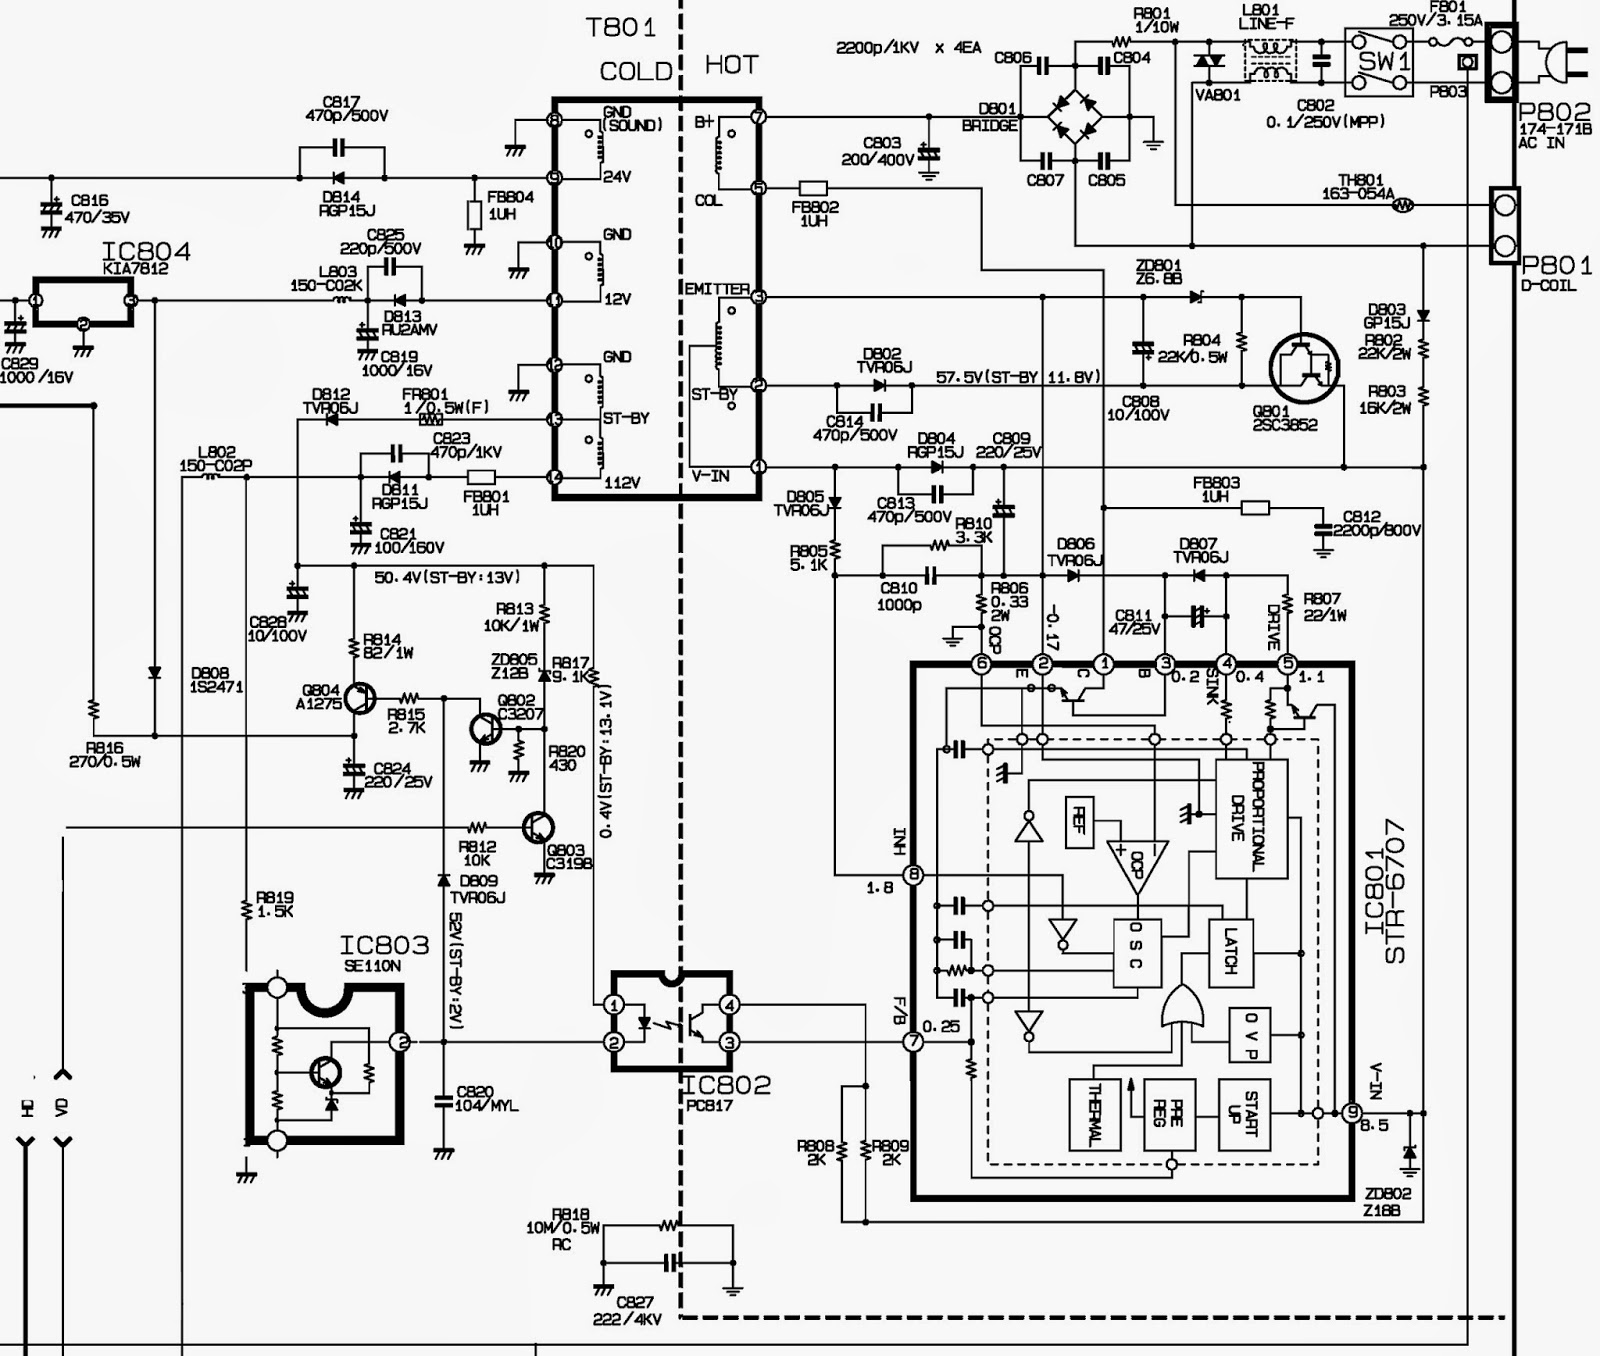 medium resolution of tv smps schematic diagram circuit diagram electro help wiring electro help philips 40pfl3606 lcd tv power supply schematic